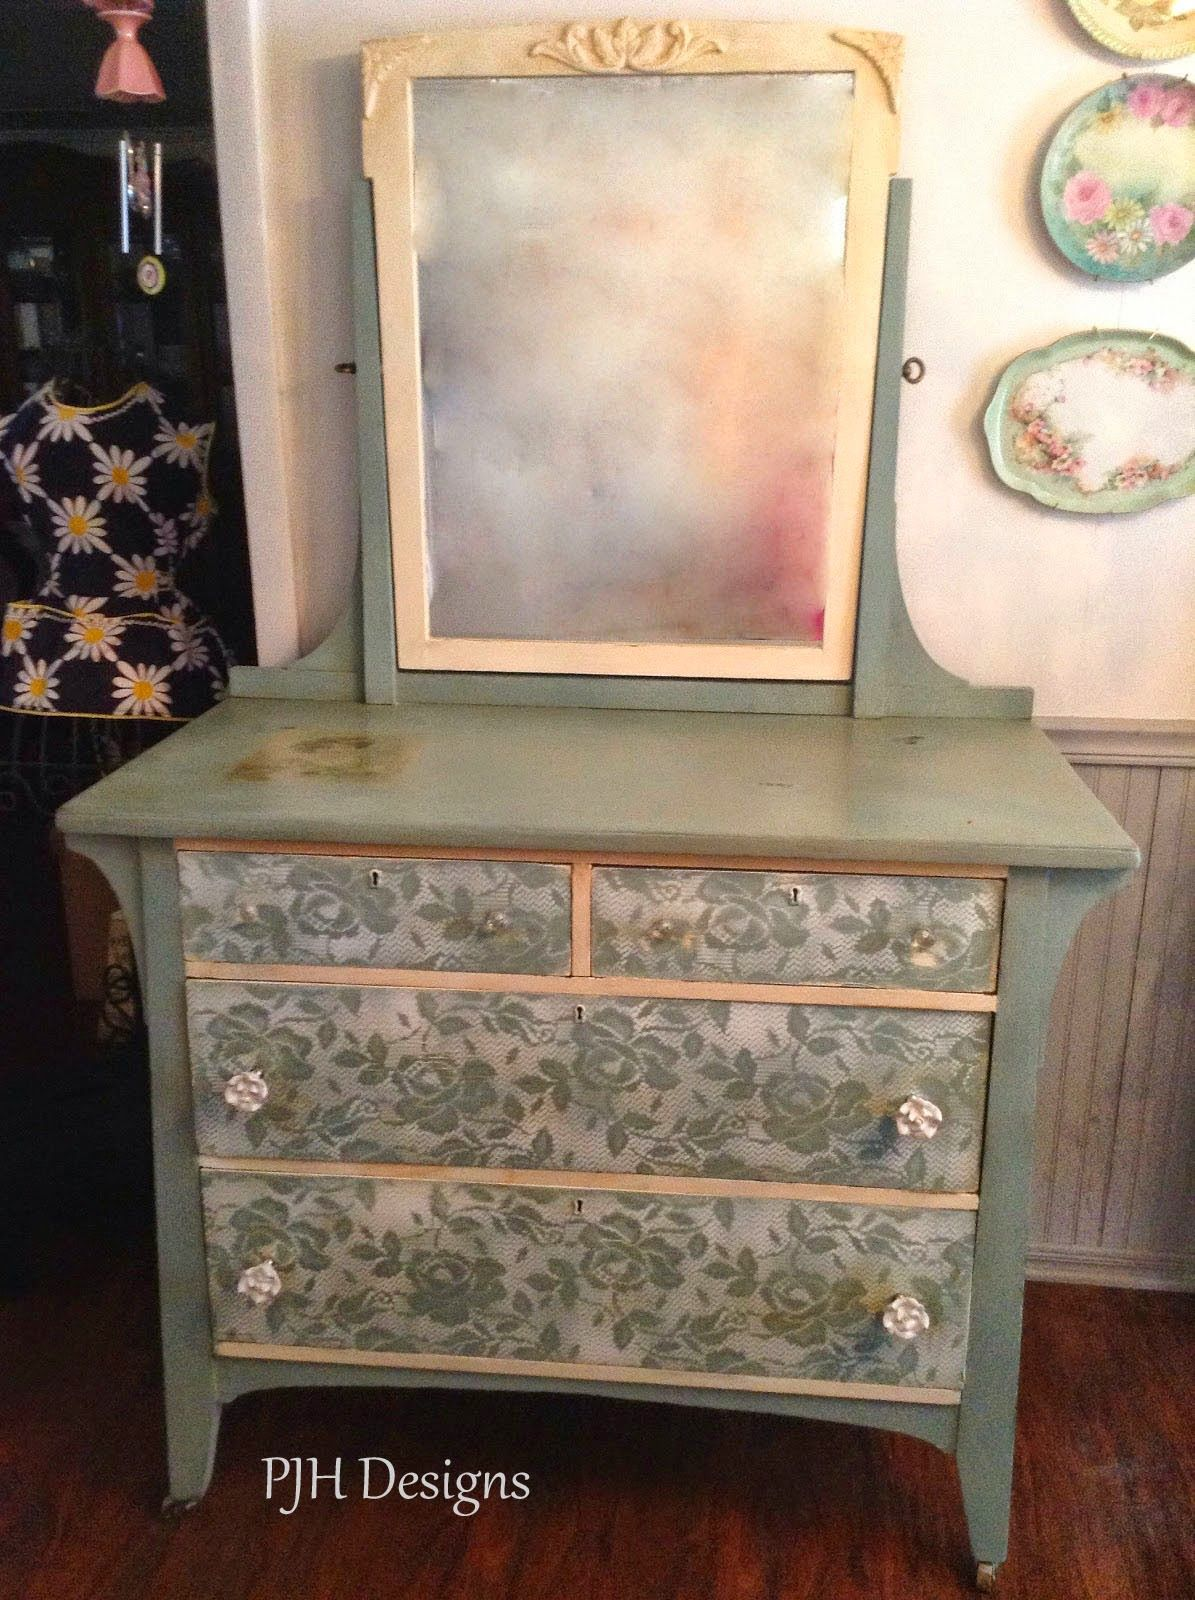 """PJH Designs Hand Painted Antique Furniture Lovely """"Duck Egg Blue"""